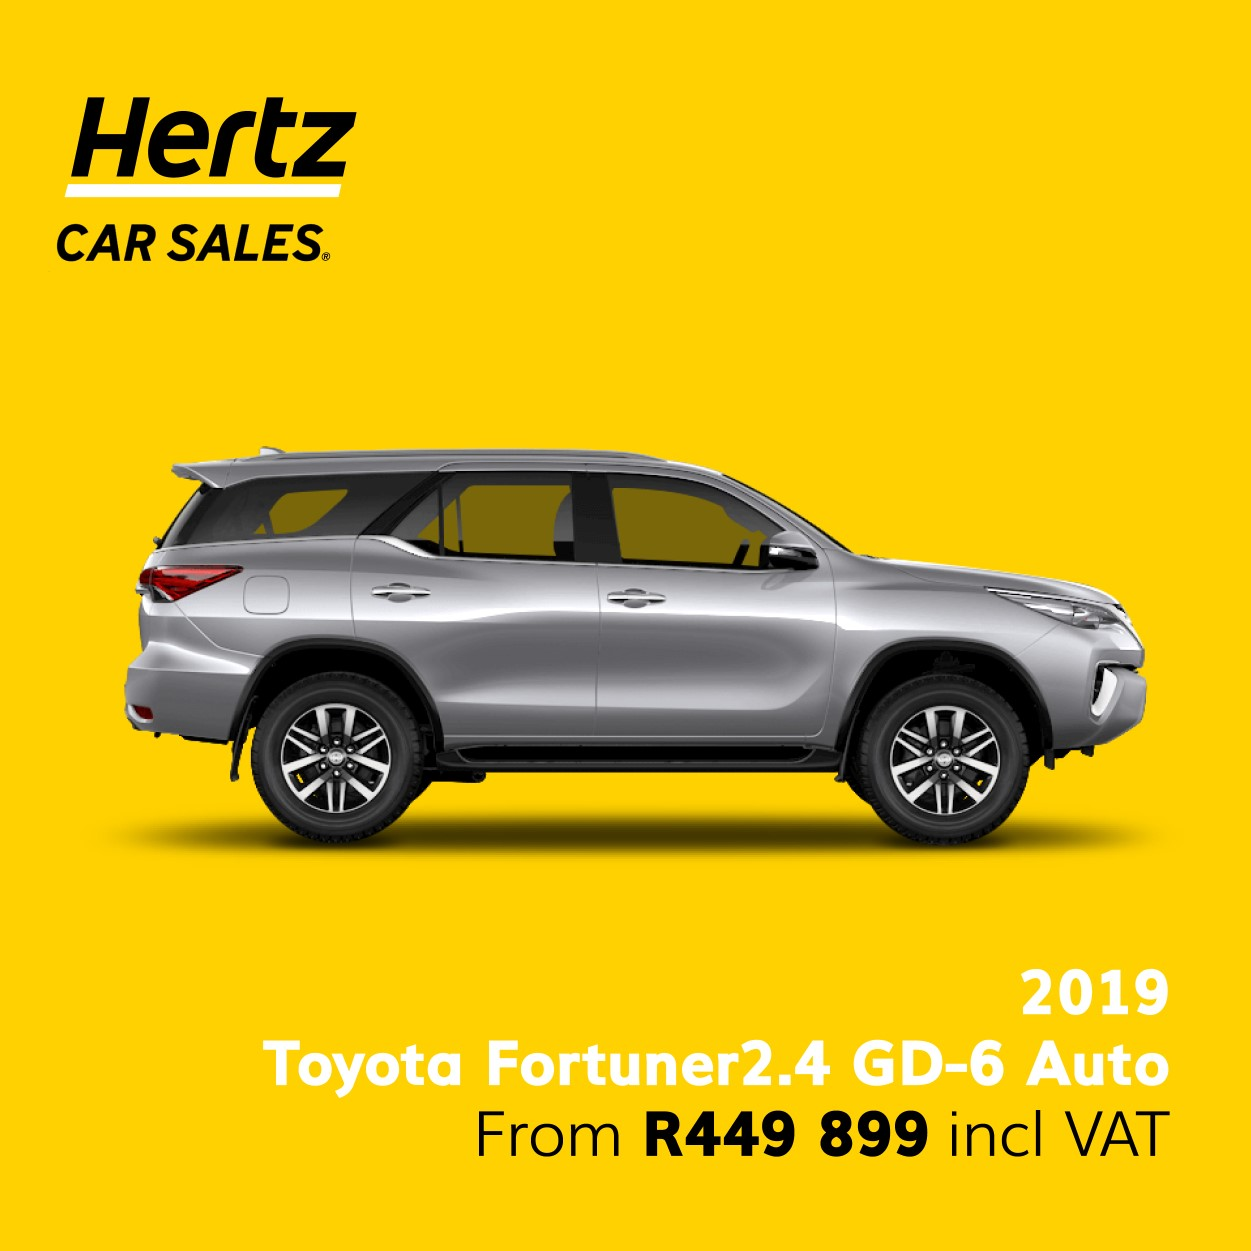 2019 Toyota Fortuner 2.4 GD6 Auto